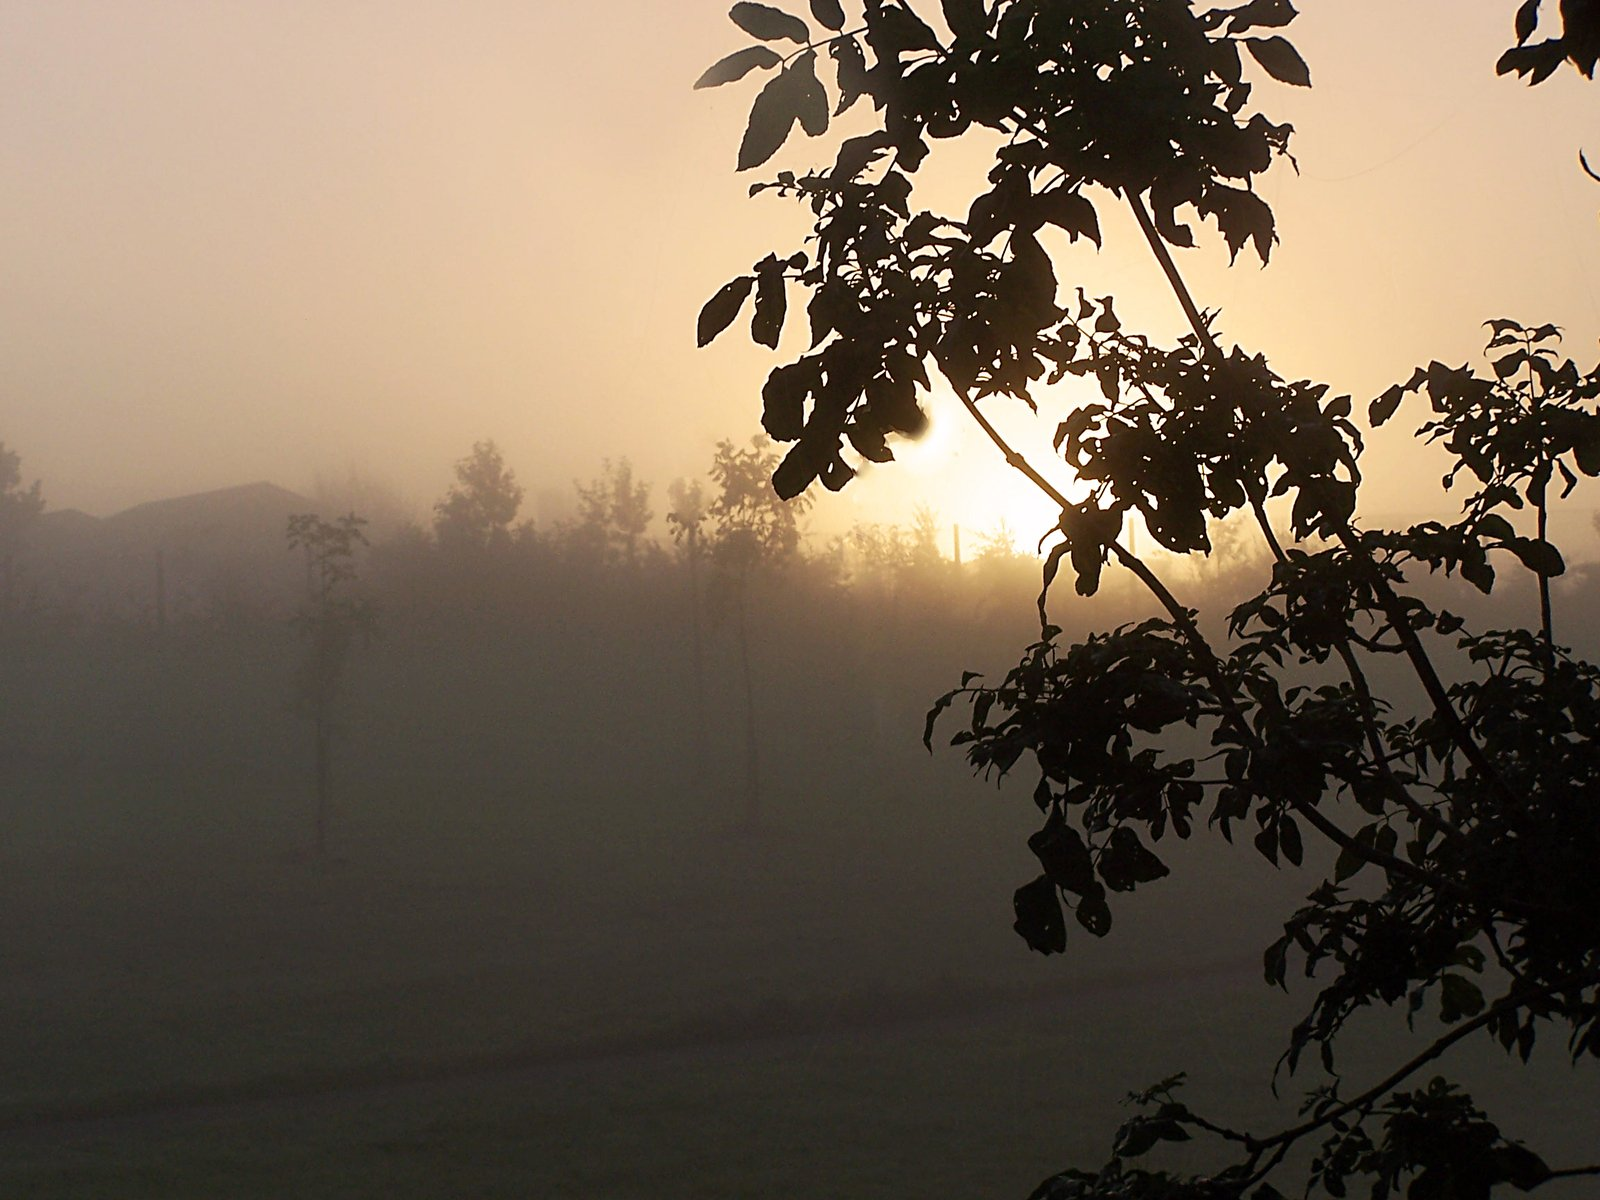 Free Foggy morning Stock Photo - FreeImages.com